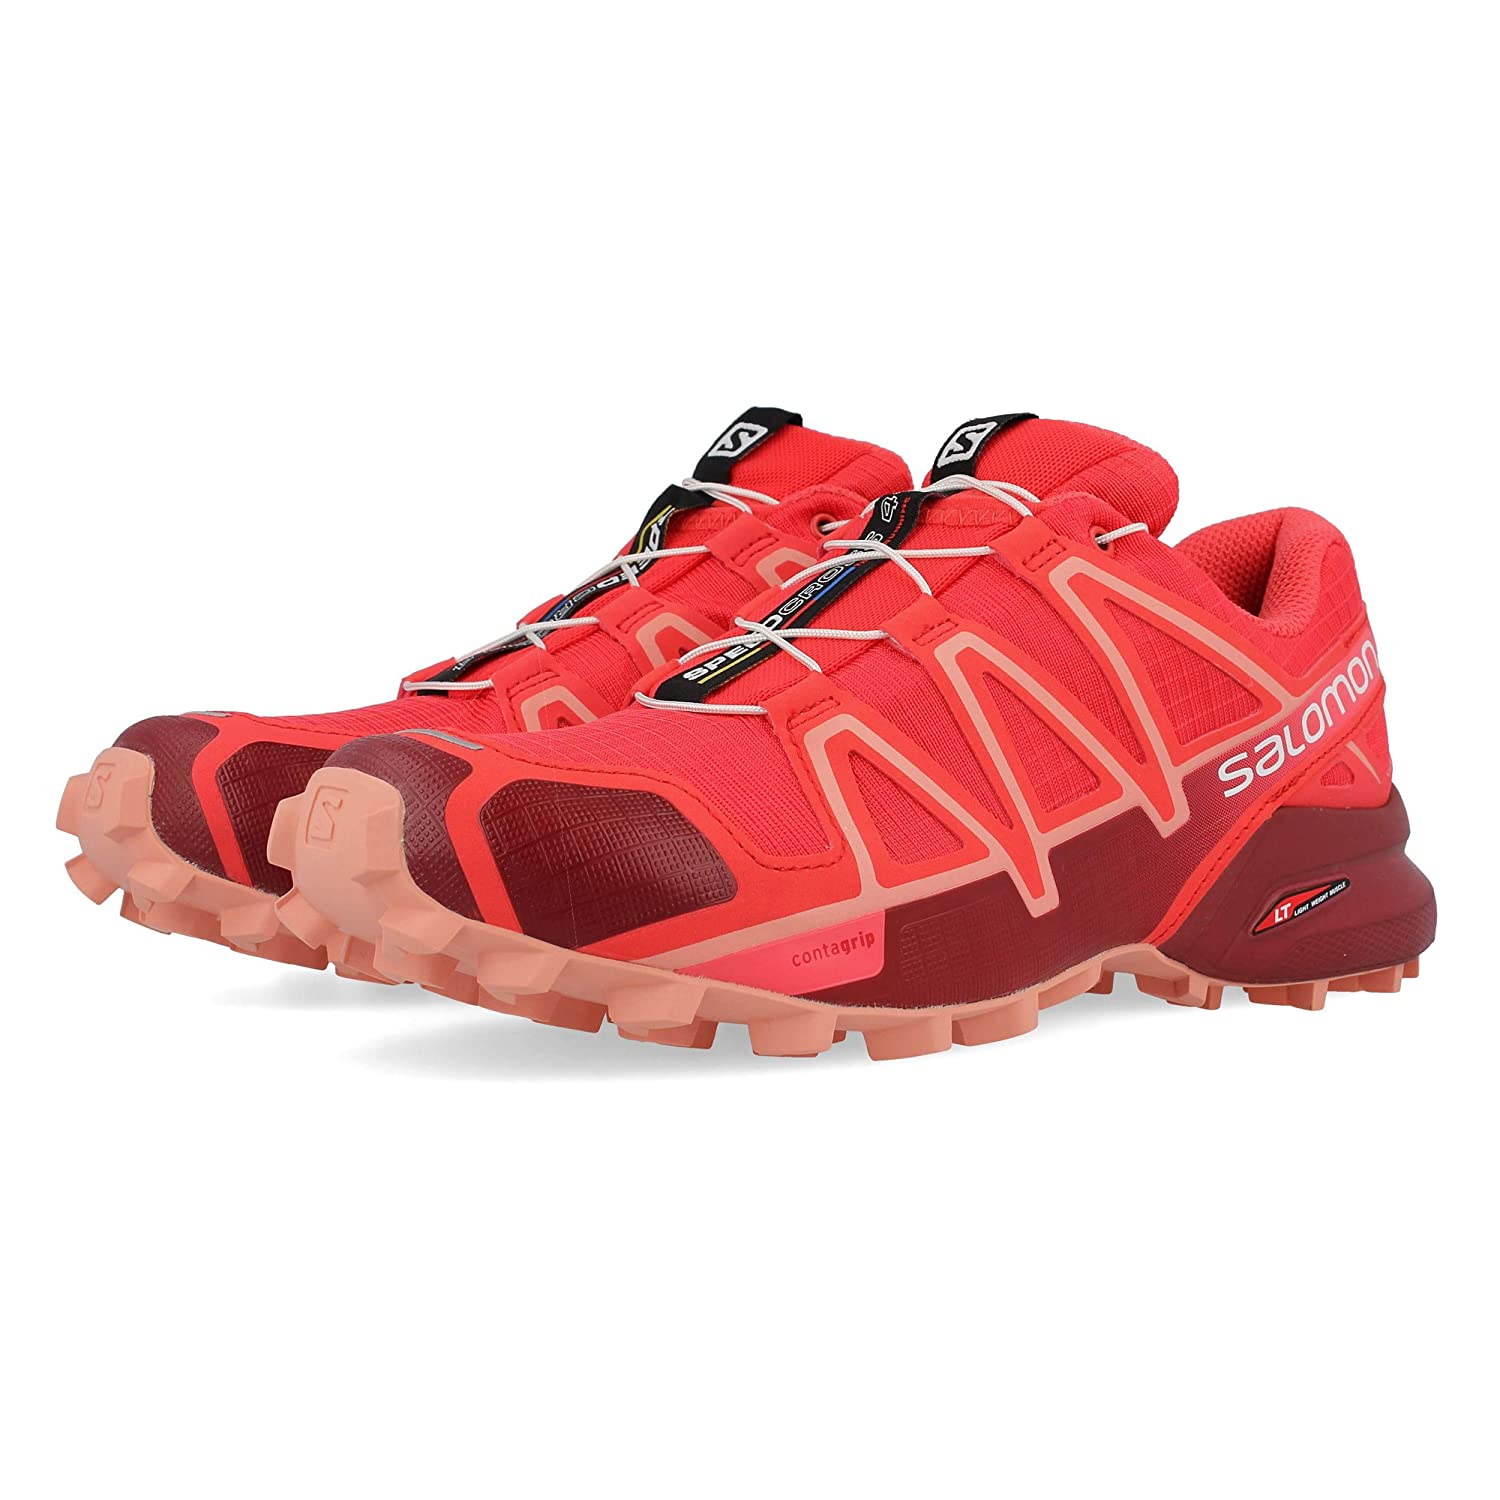 SALOMON Speedcross 4 Damen Trail Laufschuh Damen 4 7 UK - 40.2 3 EU a508a4